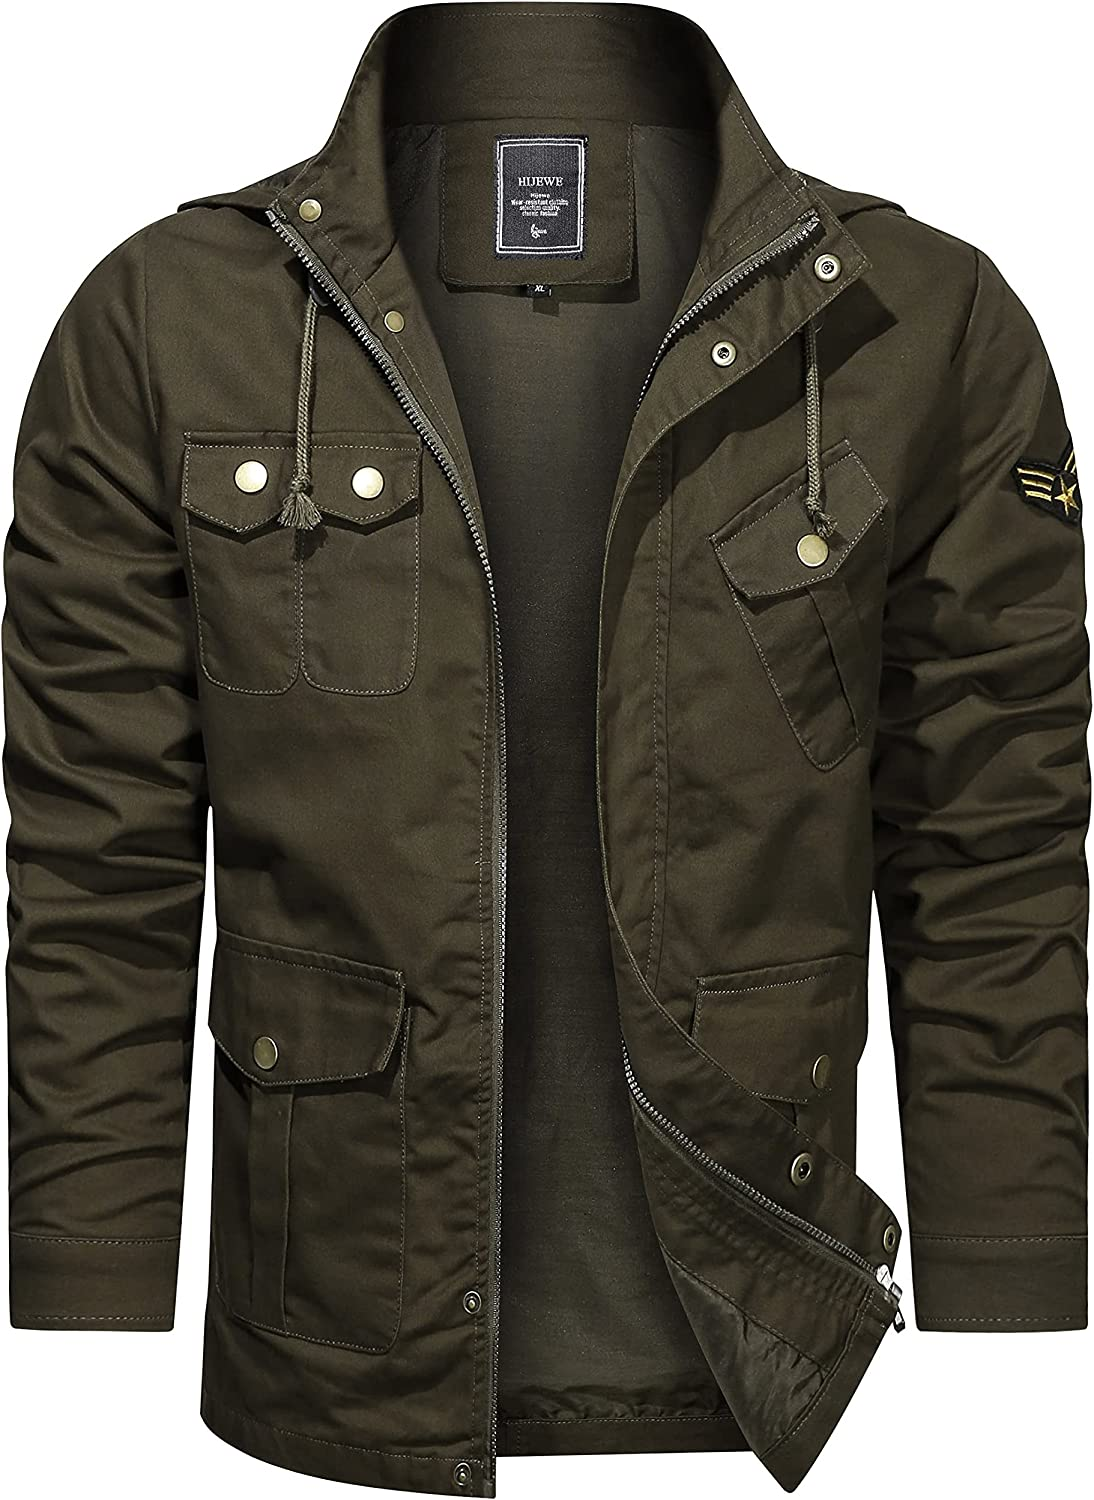 Be super welcome Bombing free shipping Men's Cotton Military Lightweight Jackets Spring Hood And With A